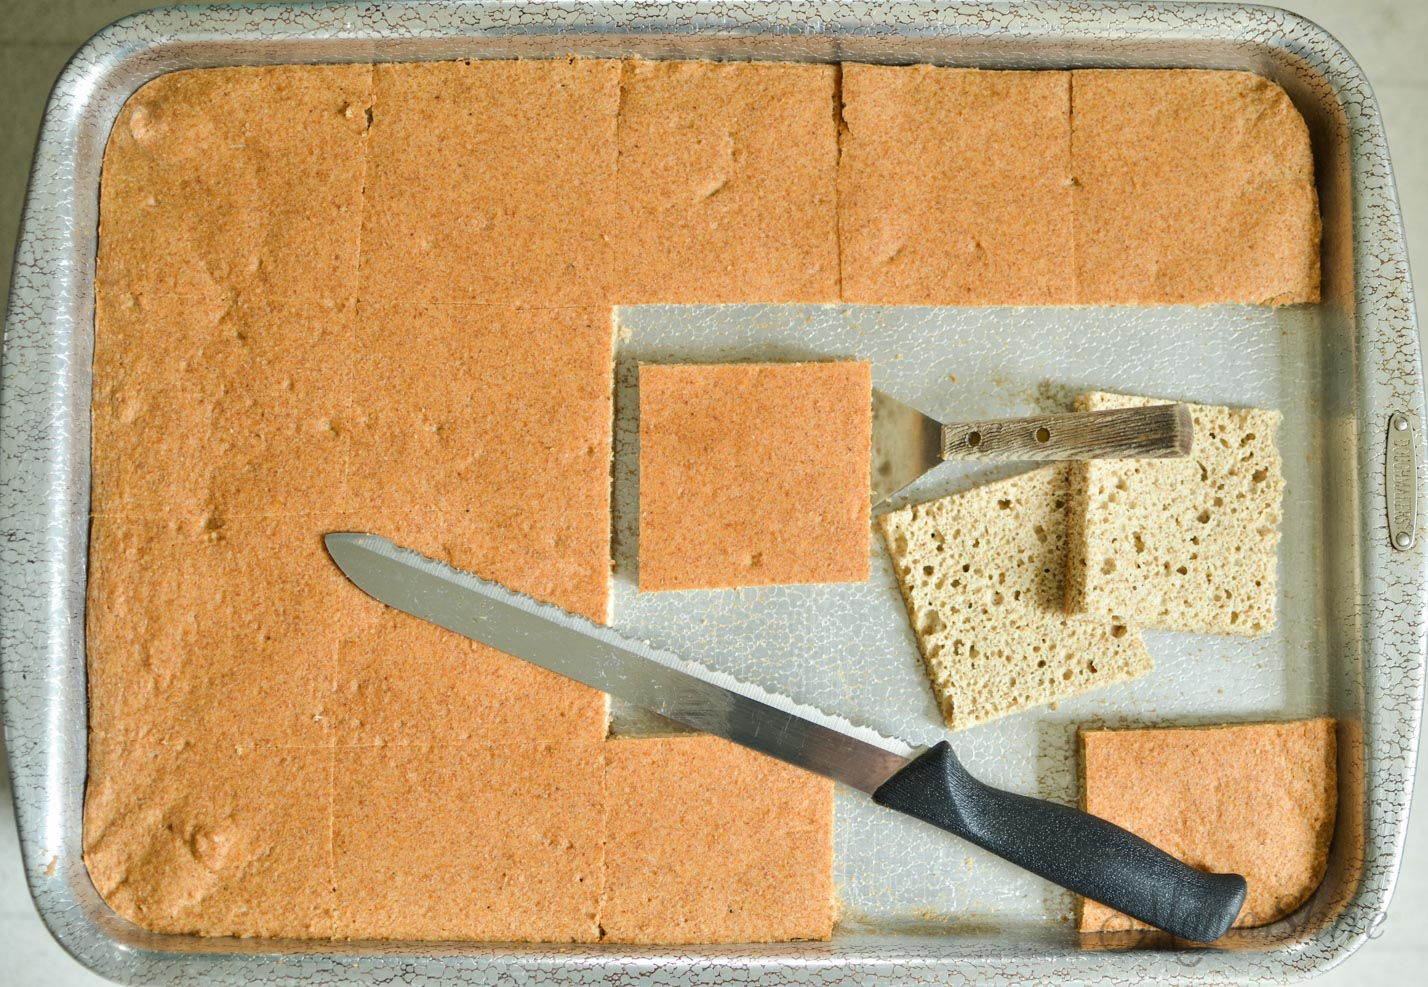 Gluten-Free Bread cut into squares with bread knife.